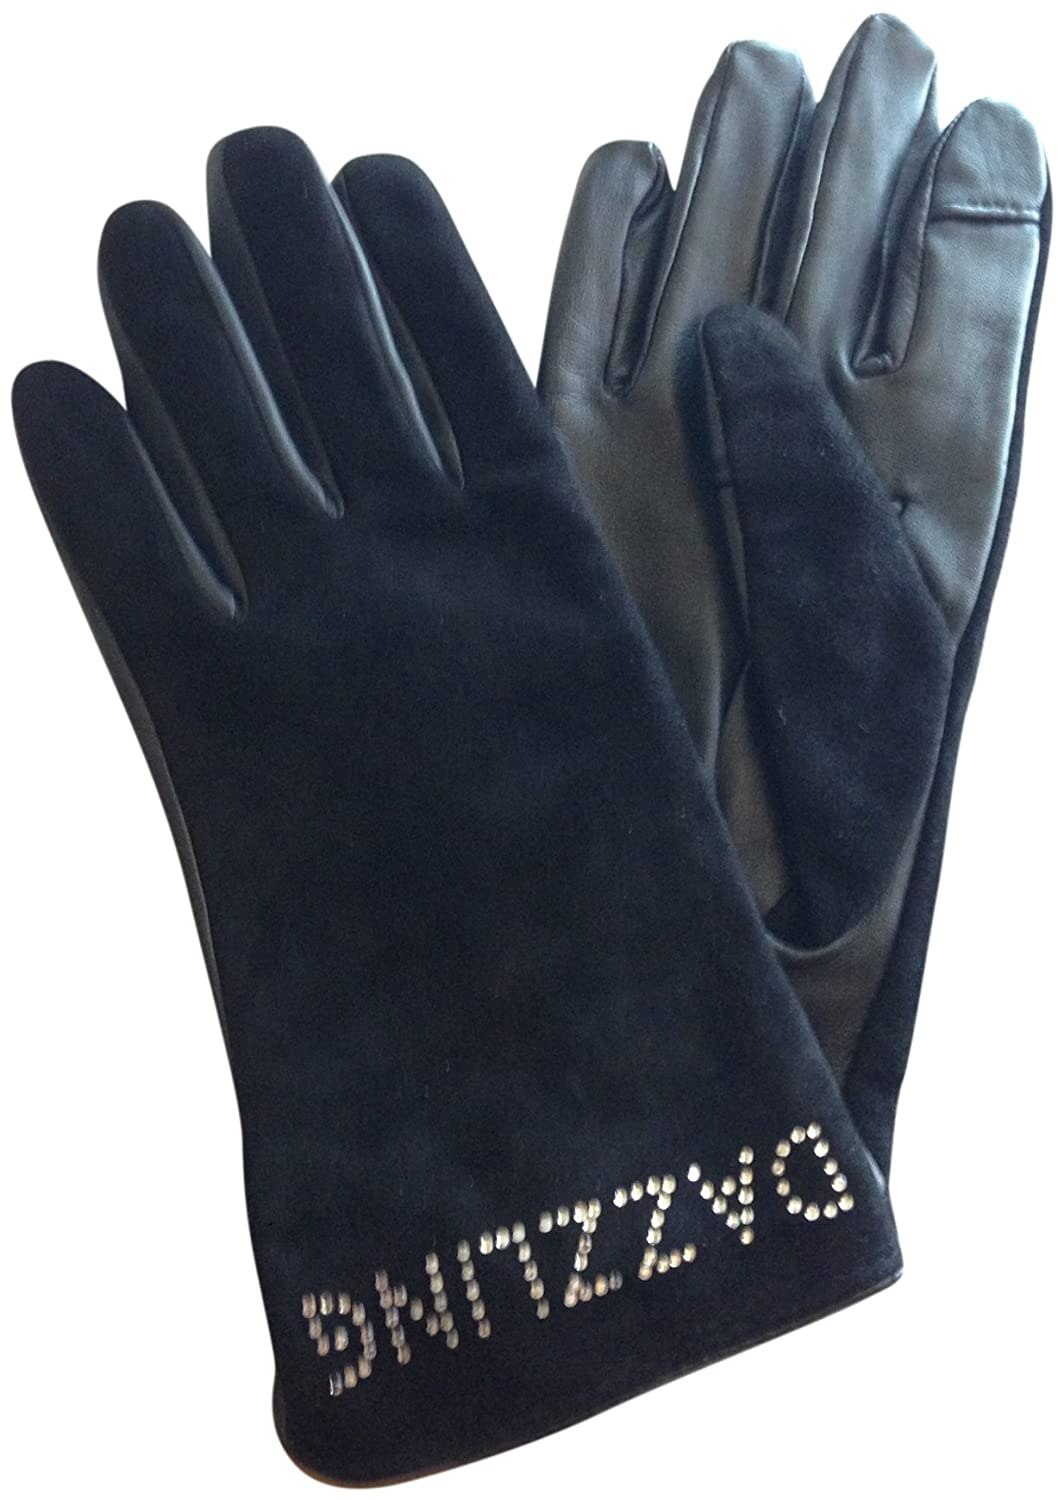 Kate Spade Be Dazzling Leather Suede Tech Gloves Size 7.5 Medium Black сумка kate spade new york kennedy street tizzie